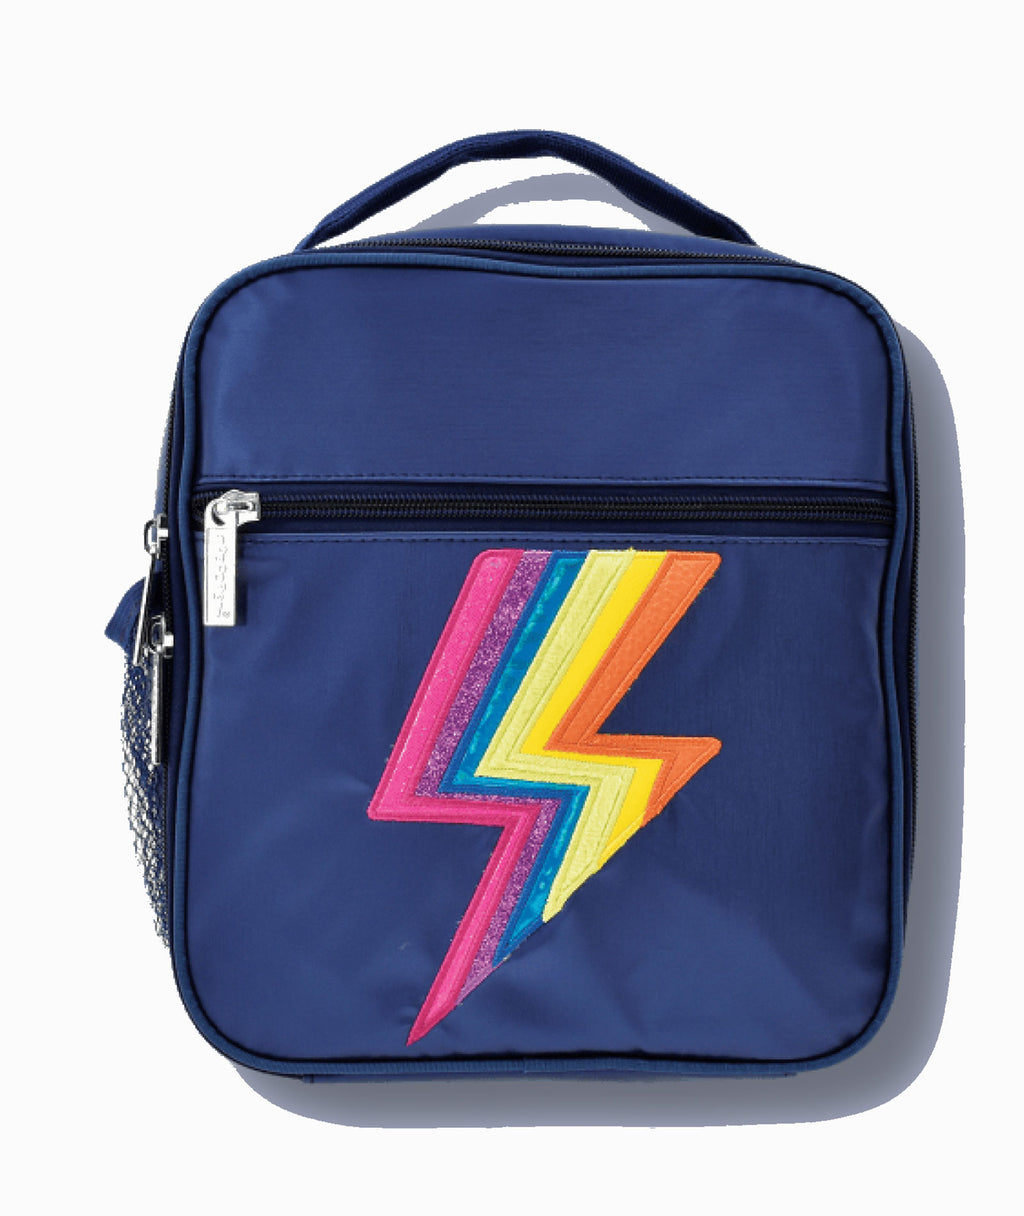 Iscream Metallic lightning Lunch Bag